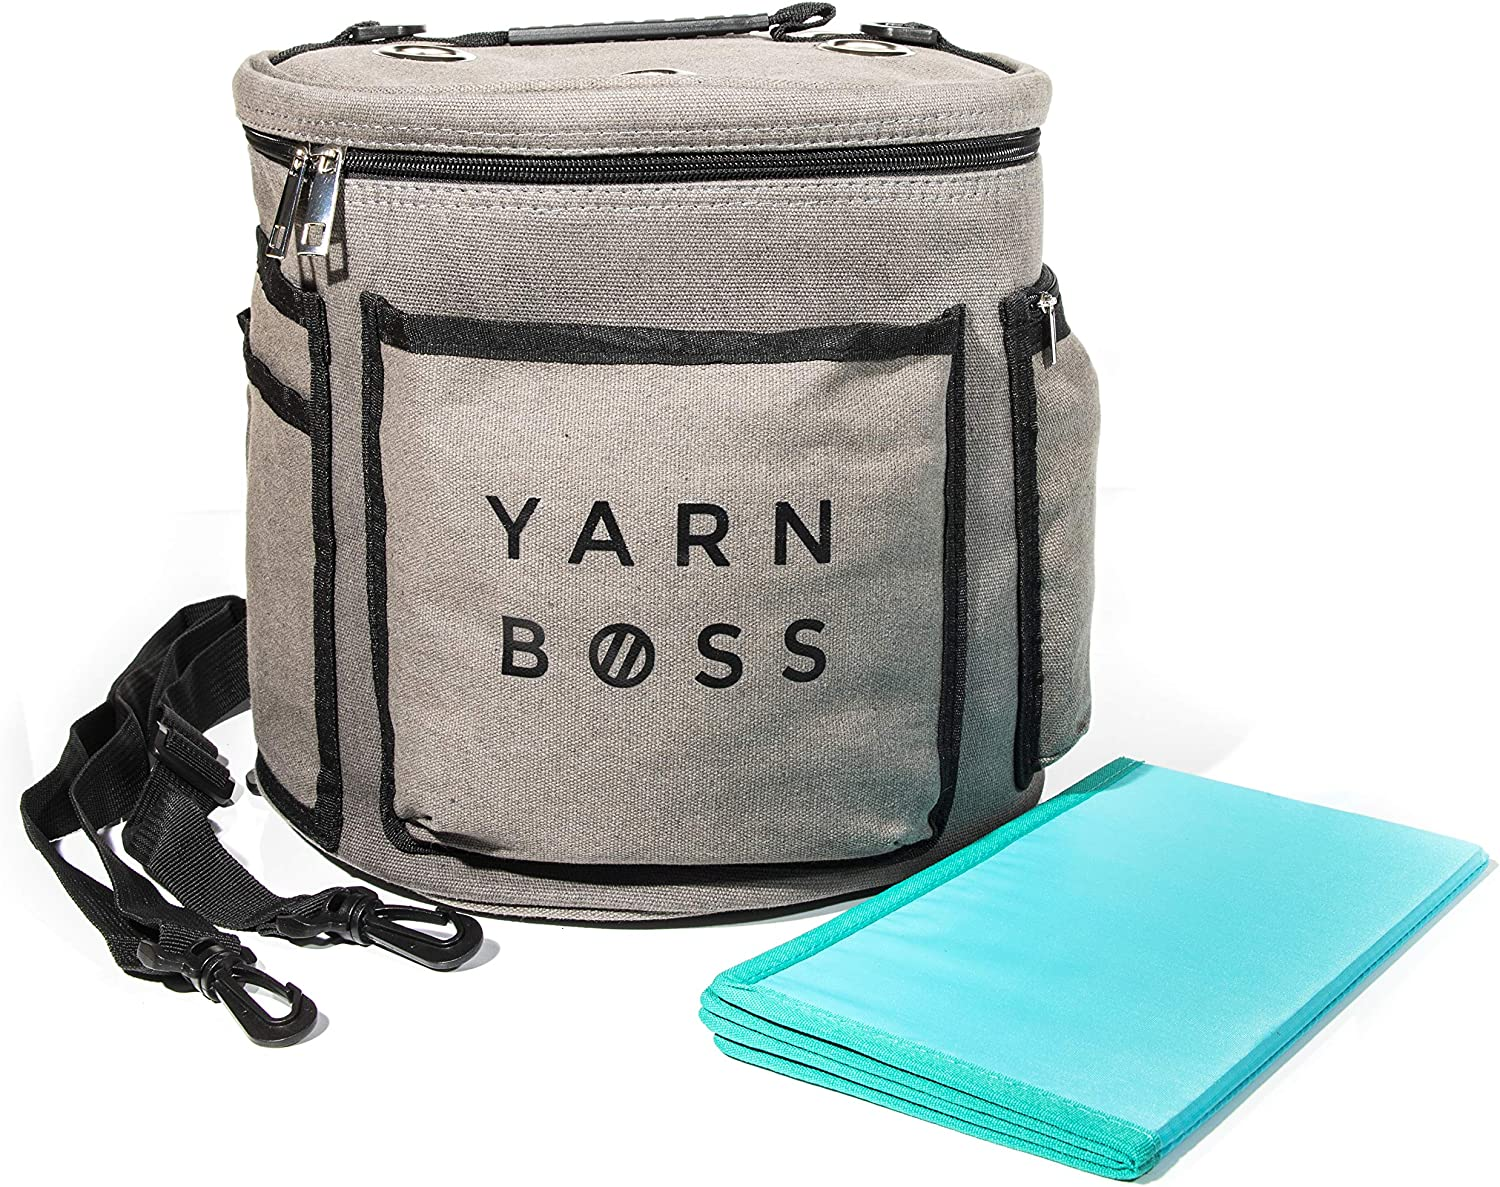 Yarn Boss Yarn Bag, Travel with Yarn and All Notions - Yarn Storage to Organize Multiple Projects and Keep Your Yarn Safe and Clean - Wide Grommets Stop Tangling for Best Crochet Bag or Knitting Bag